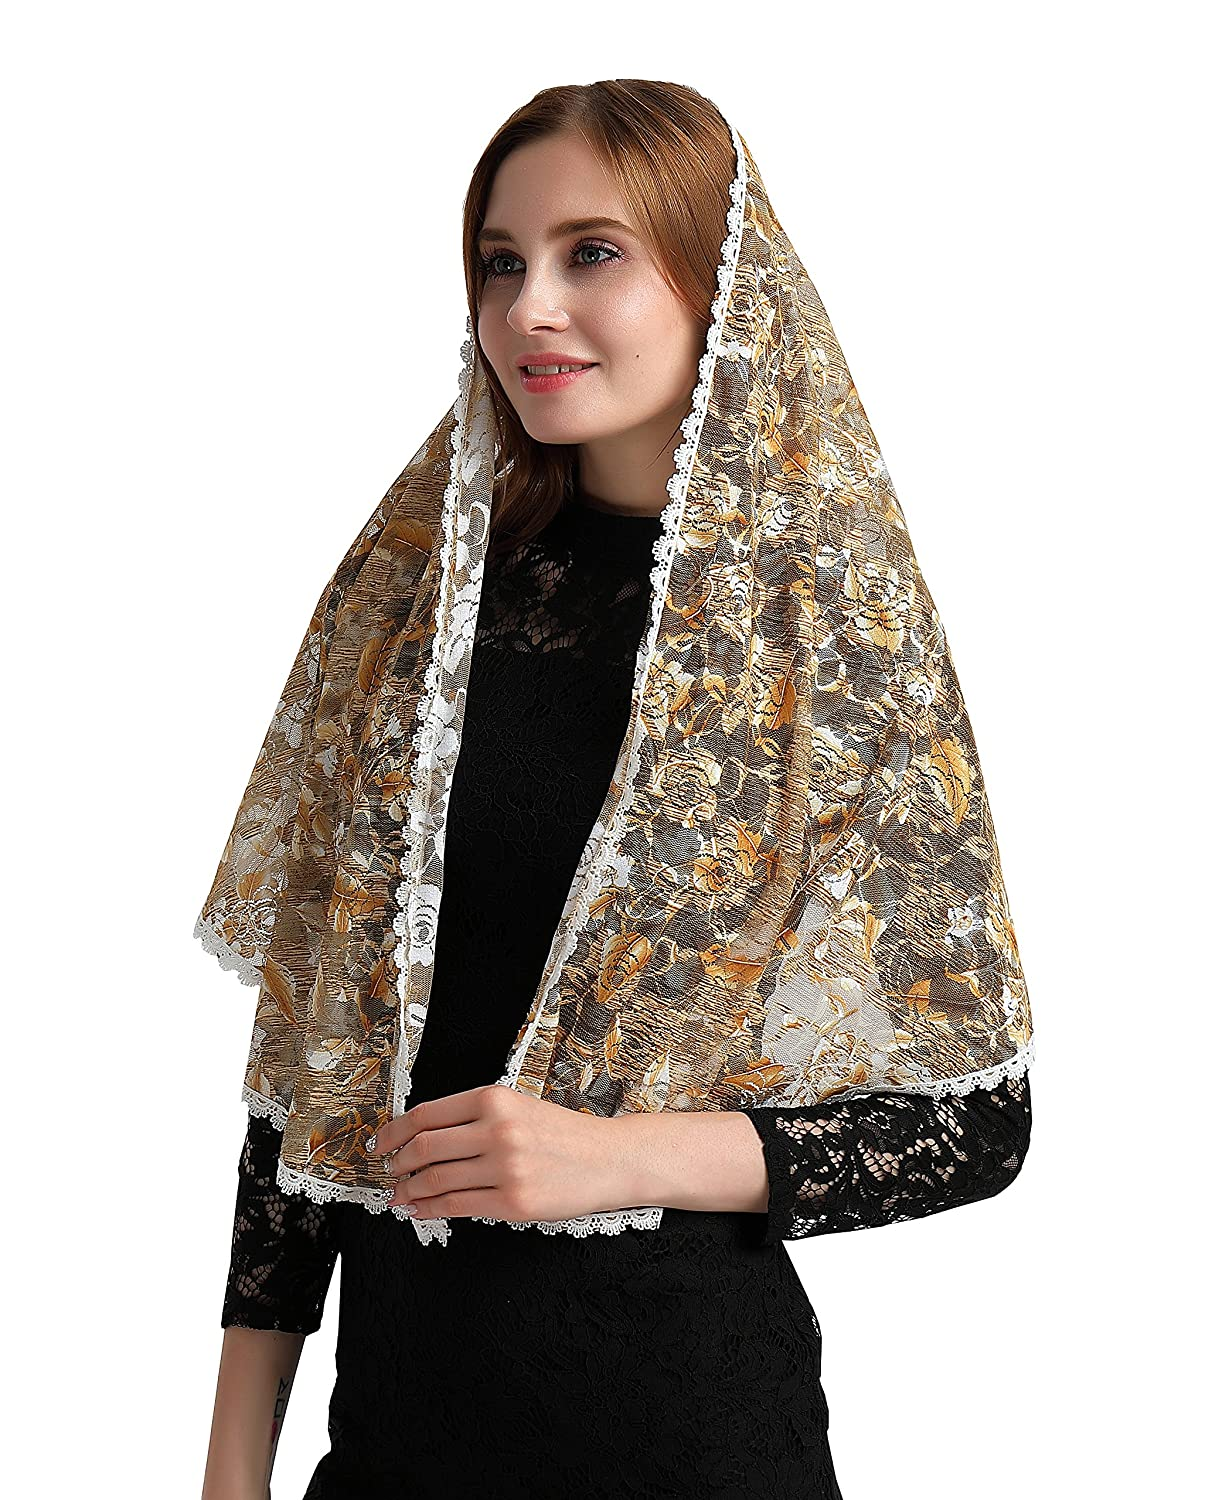 Triangle Lace Mantilla Veil Tulle Scarf Covering Church Veil for Mass Wedding Br